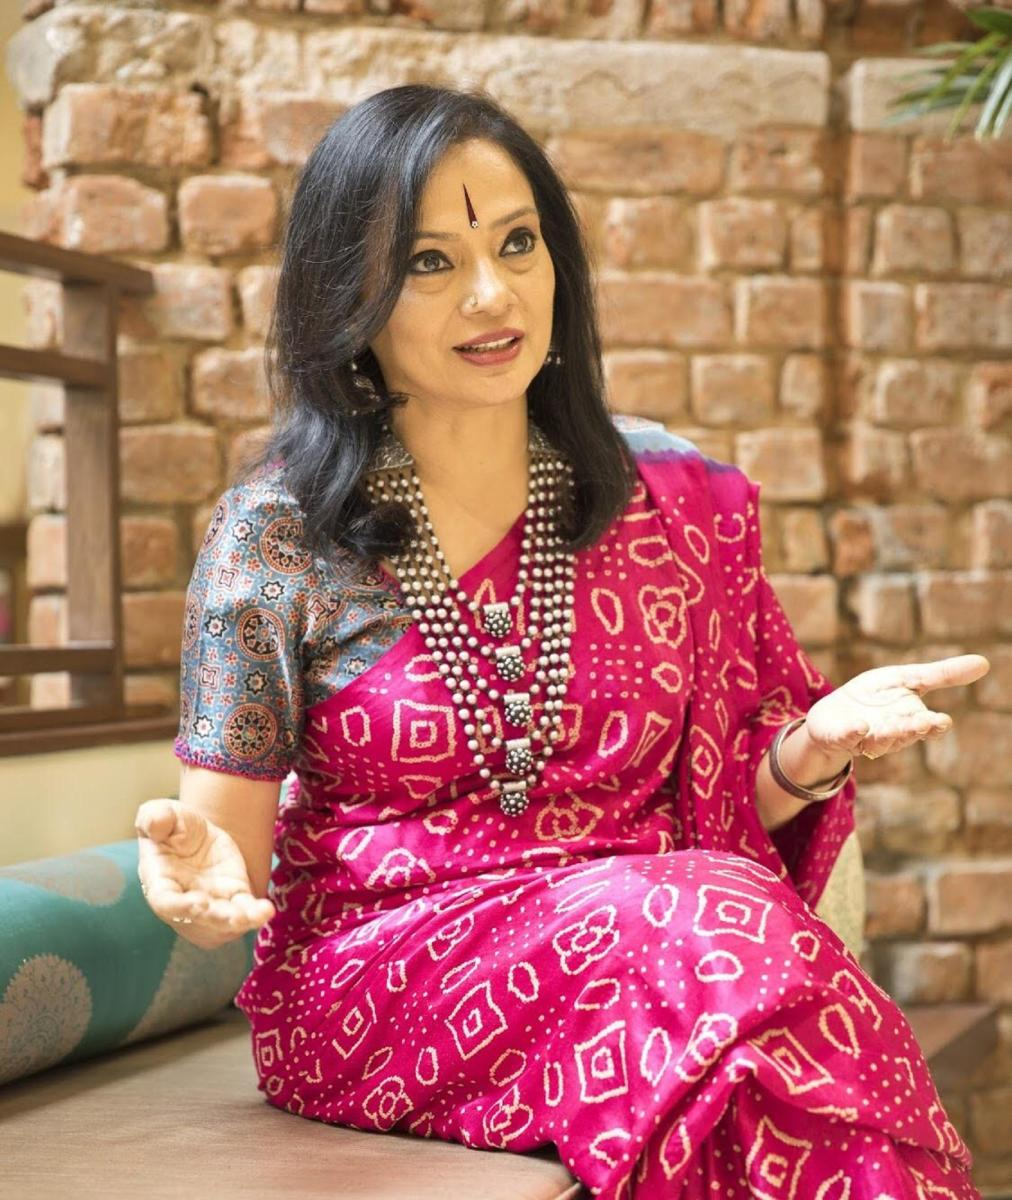 Malavika Sarukkai says mythological stories are a challenge when replicated through dance.